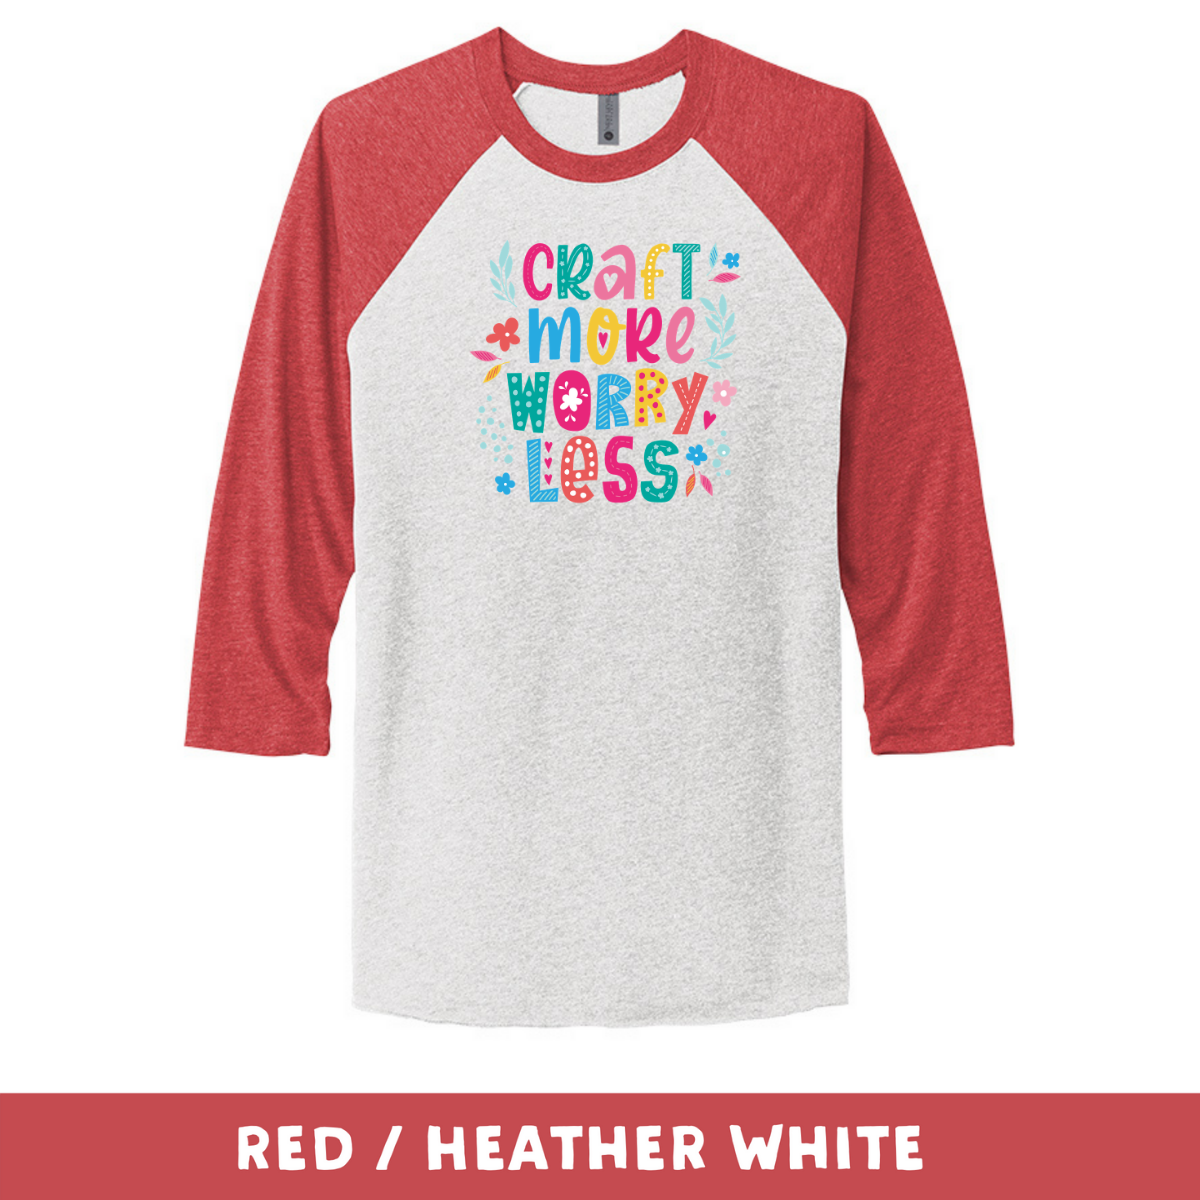 Red Heather White - Unisex Tri-Blend 3/4 Sleeve Raglan Tee - Craft More Worry Less